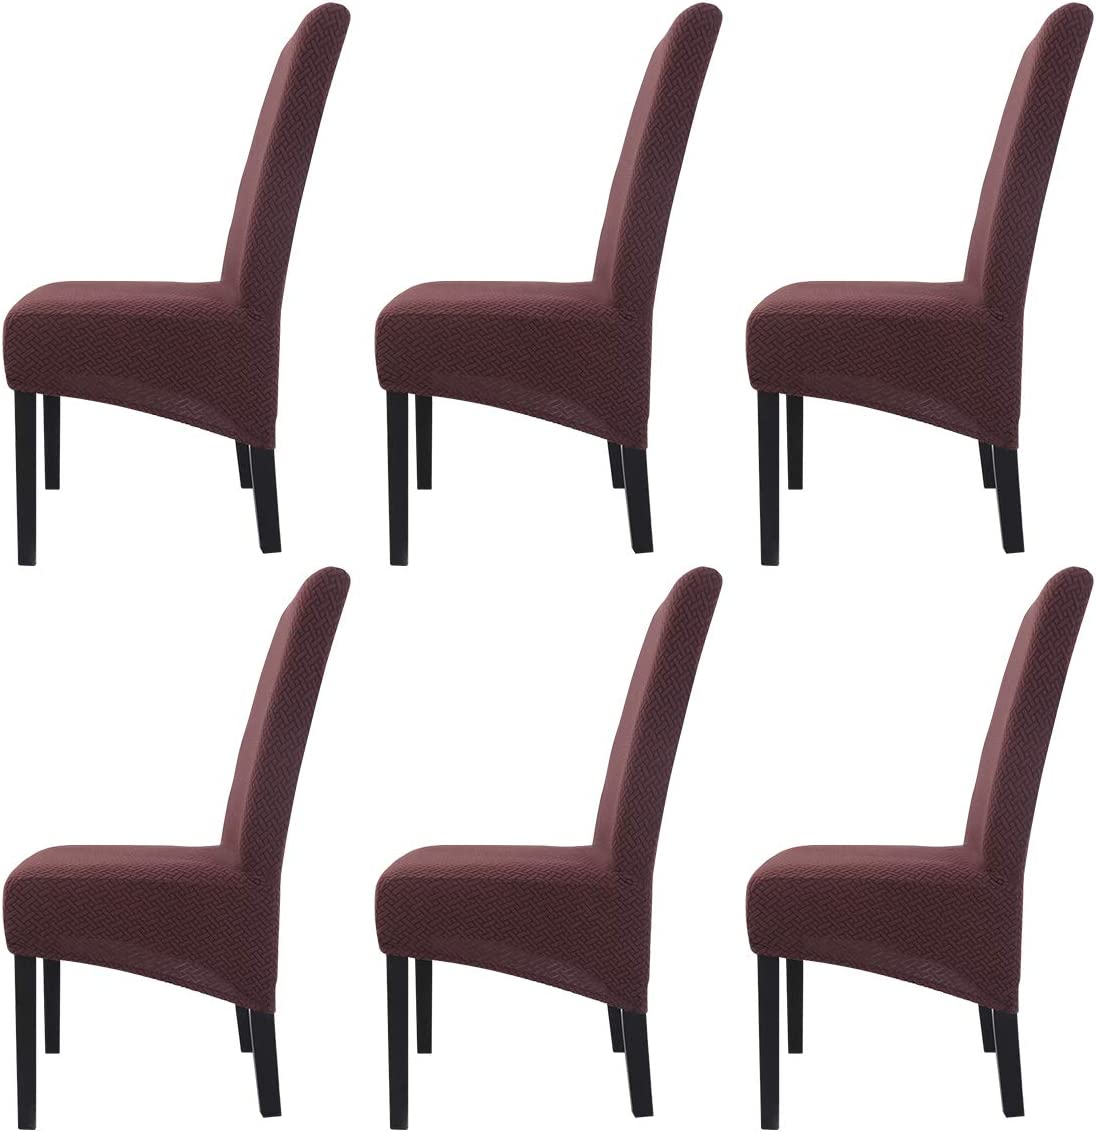 Large Size Stretch Chair Covers Pack of 2 Removable Washable Printing Fabric Chair Slipcover for Dining Room Hotel Banquet Brown